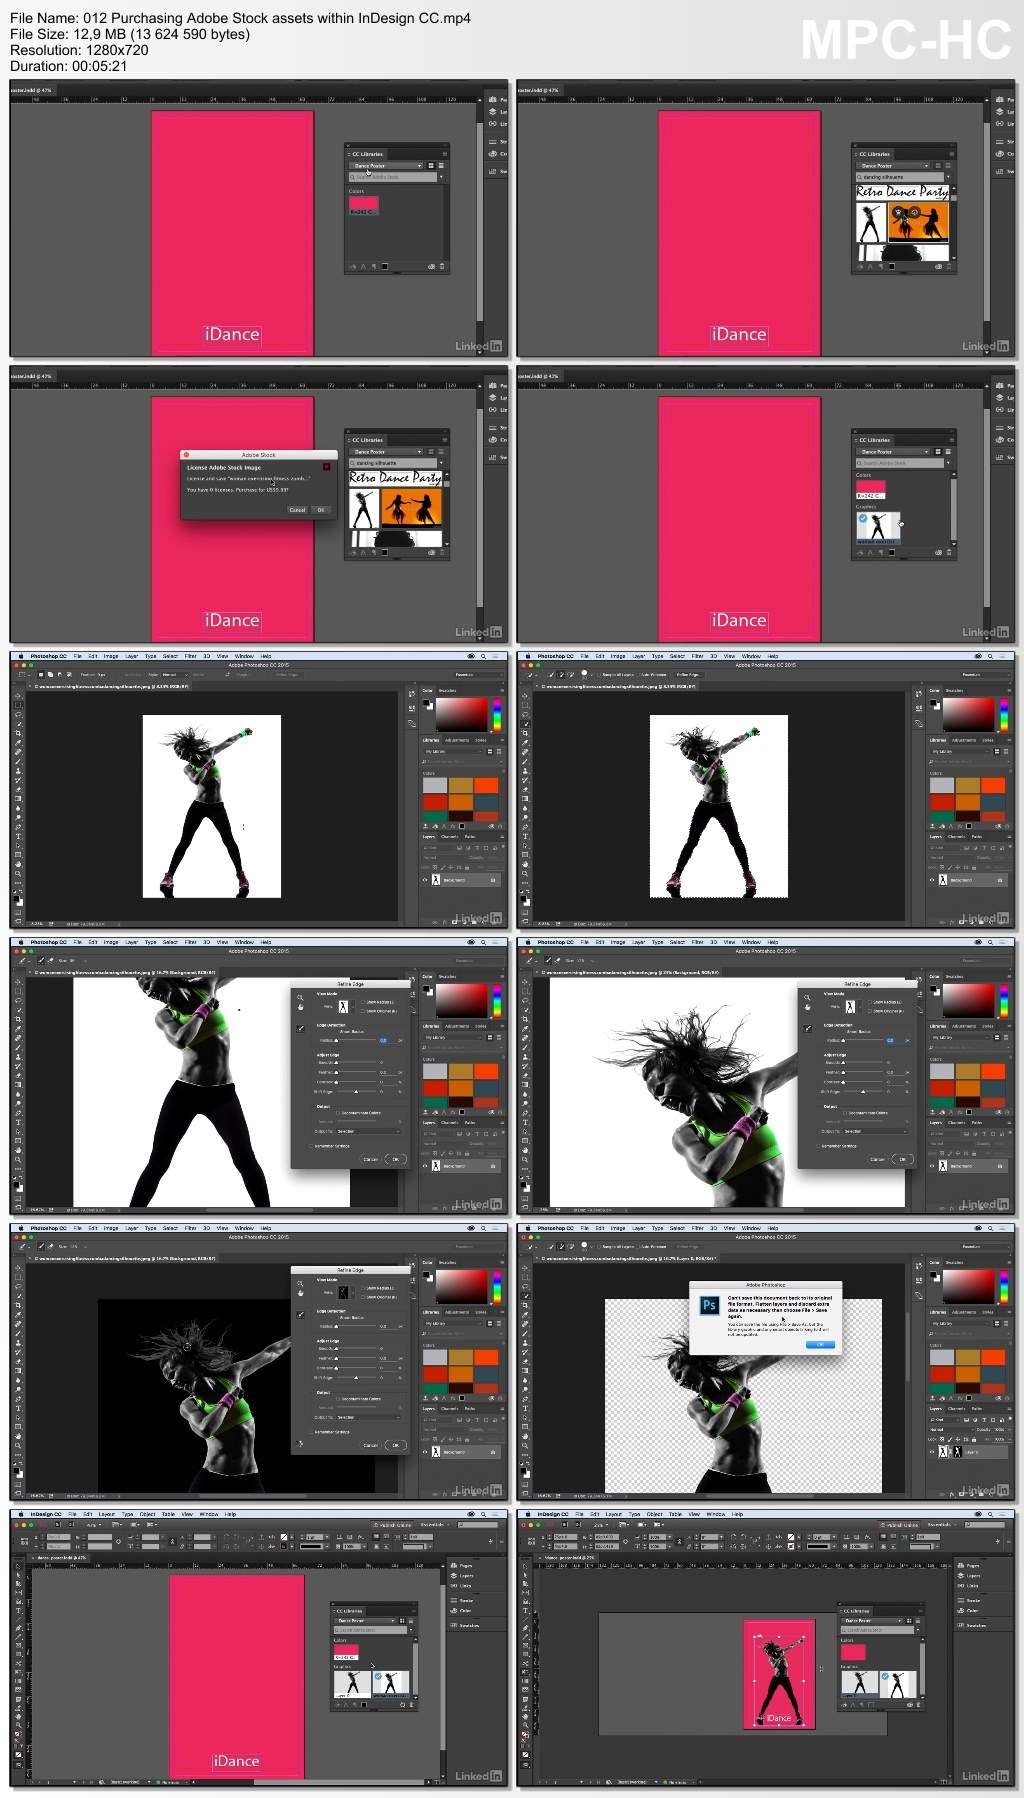 Lynda - InDesign: 2015 Creative Cloud Updates (updated Jun 21, 2016)